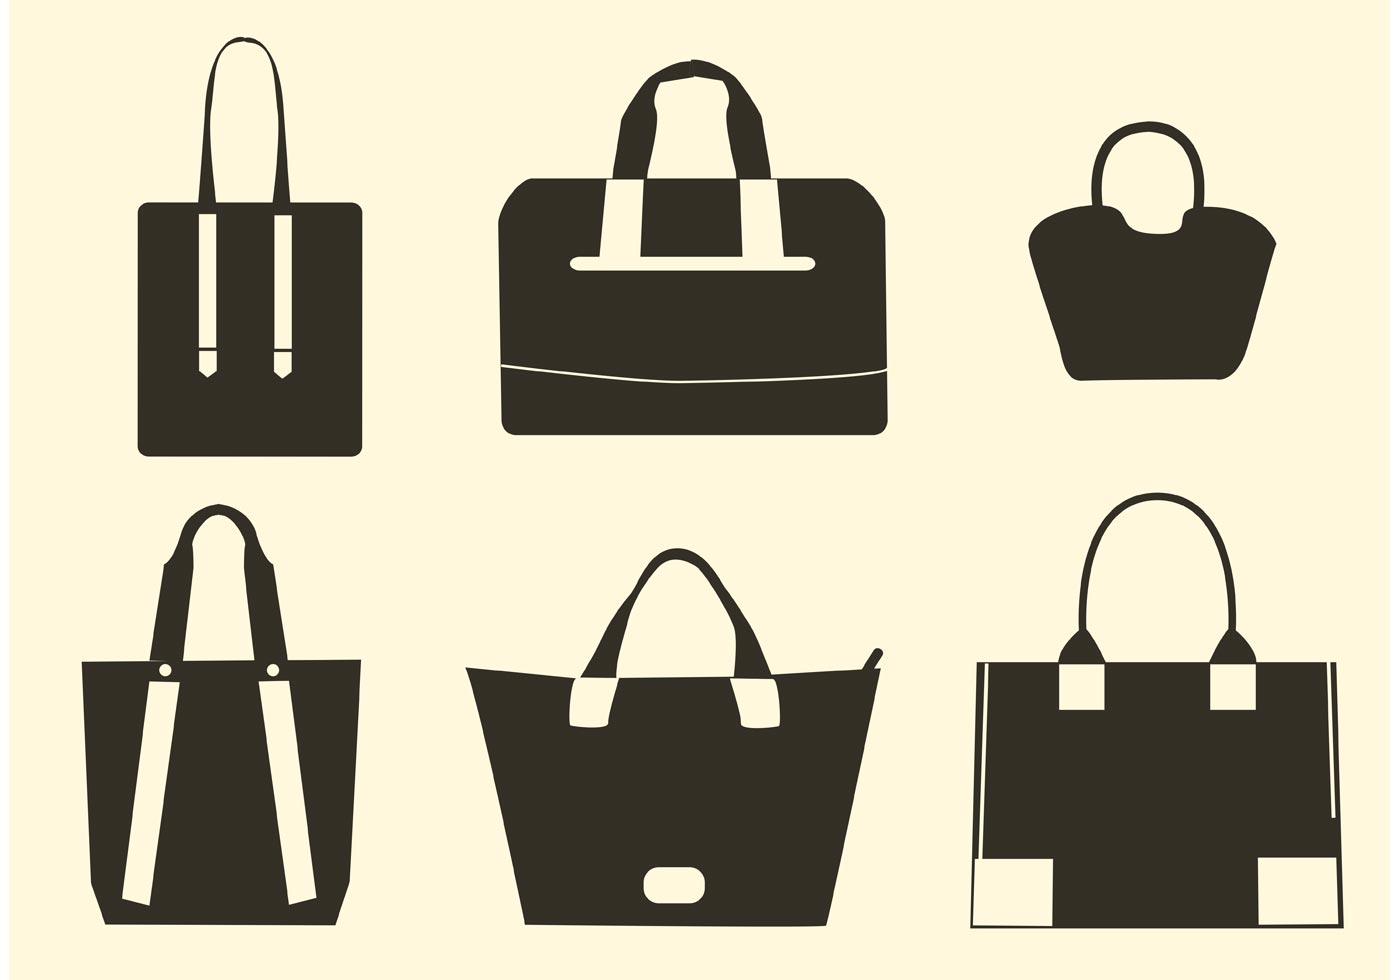 Purse silhouette clipart image library Free Purse Clipart silhouette, Download Free Clip Art on ... image library